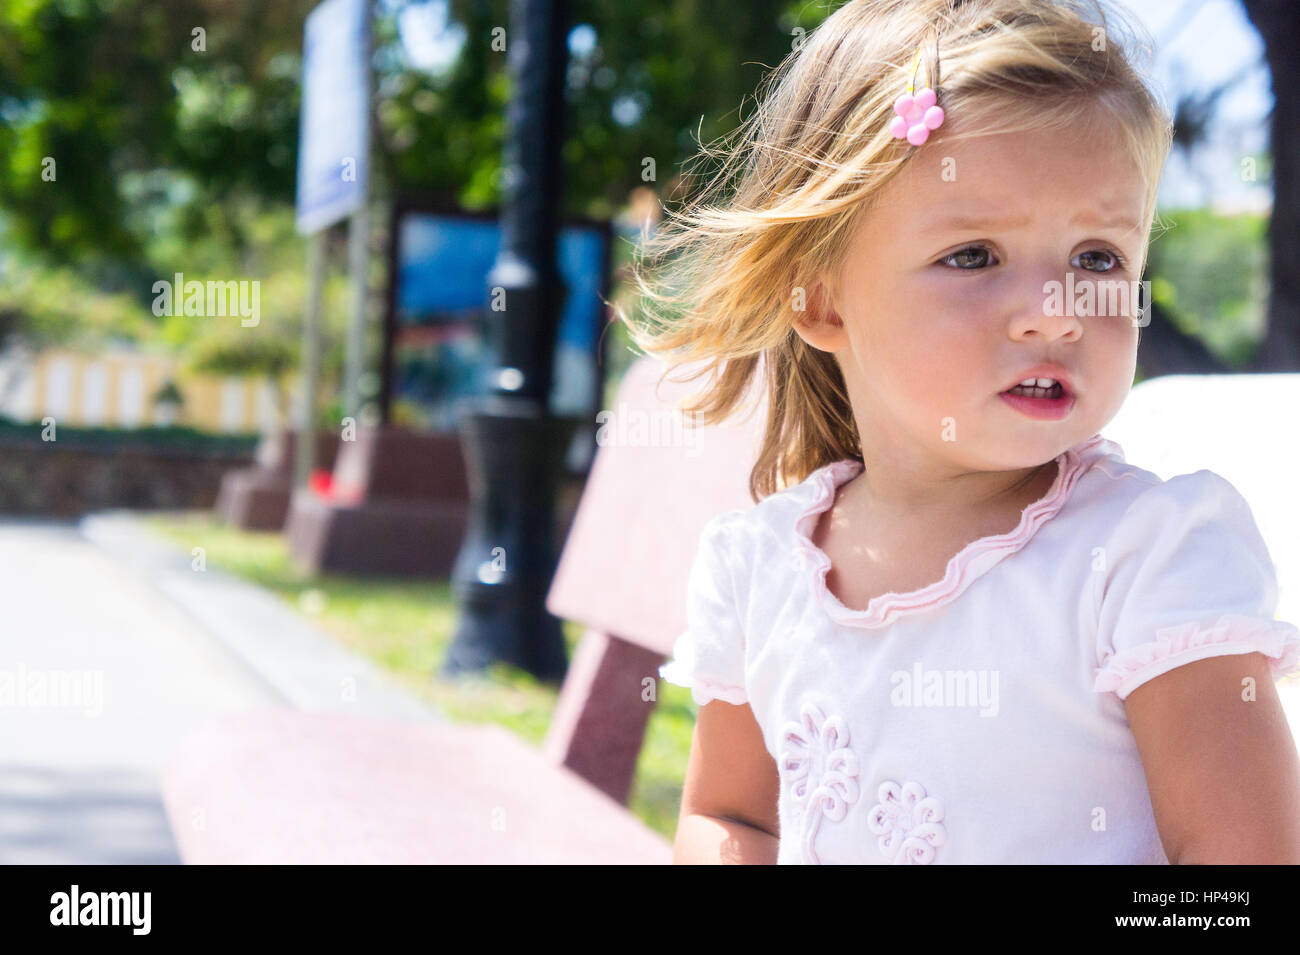 Cute Child Hot Sunny Day Stock Photos  Cute Child Hot -6471